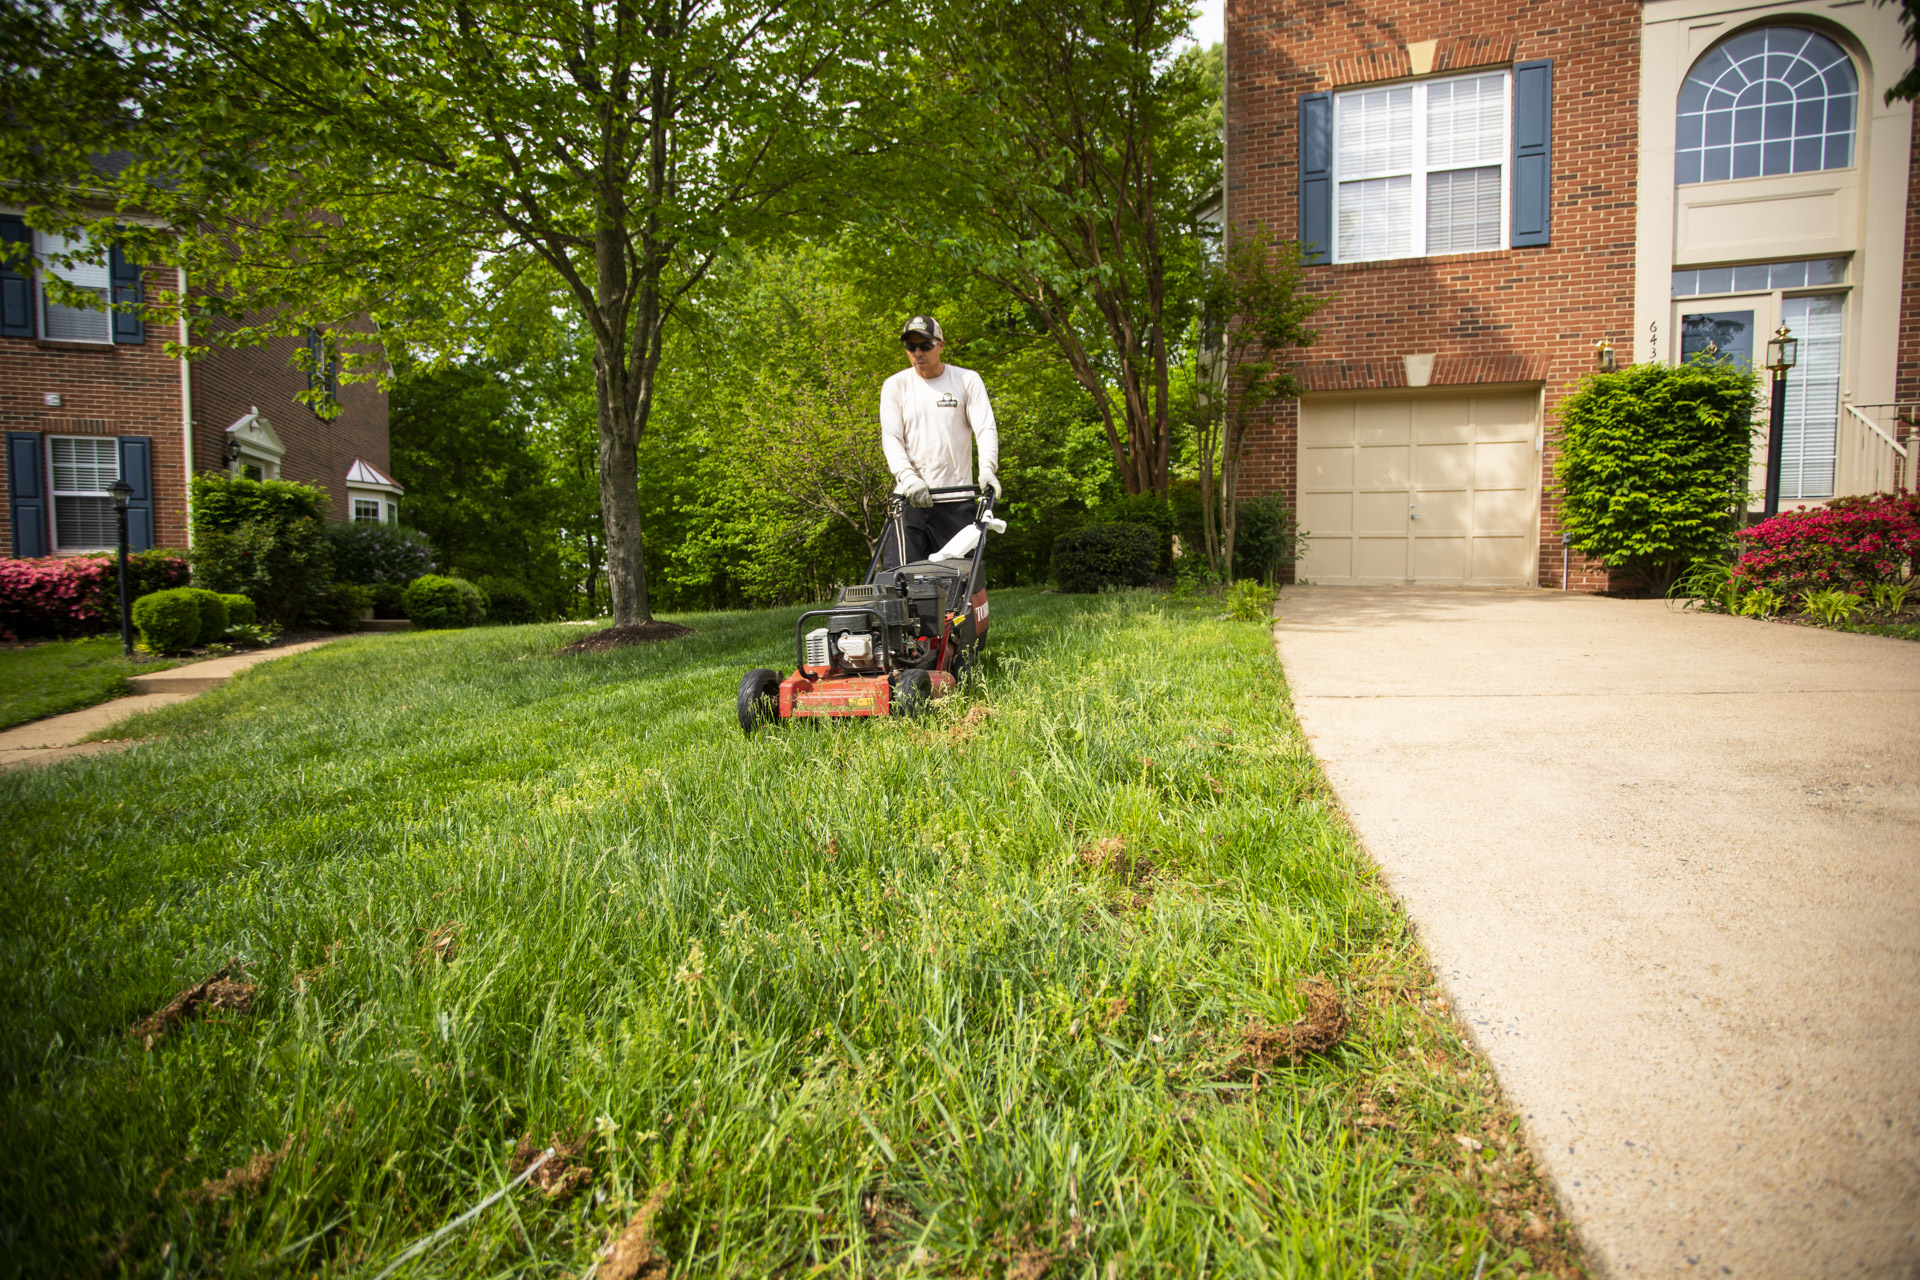 professional lawn technician mowing lawn